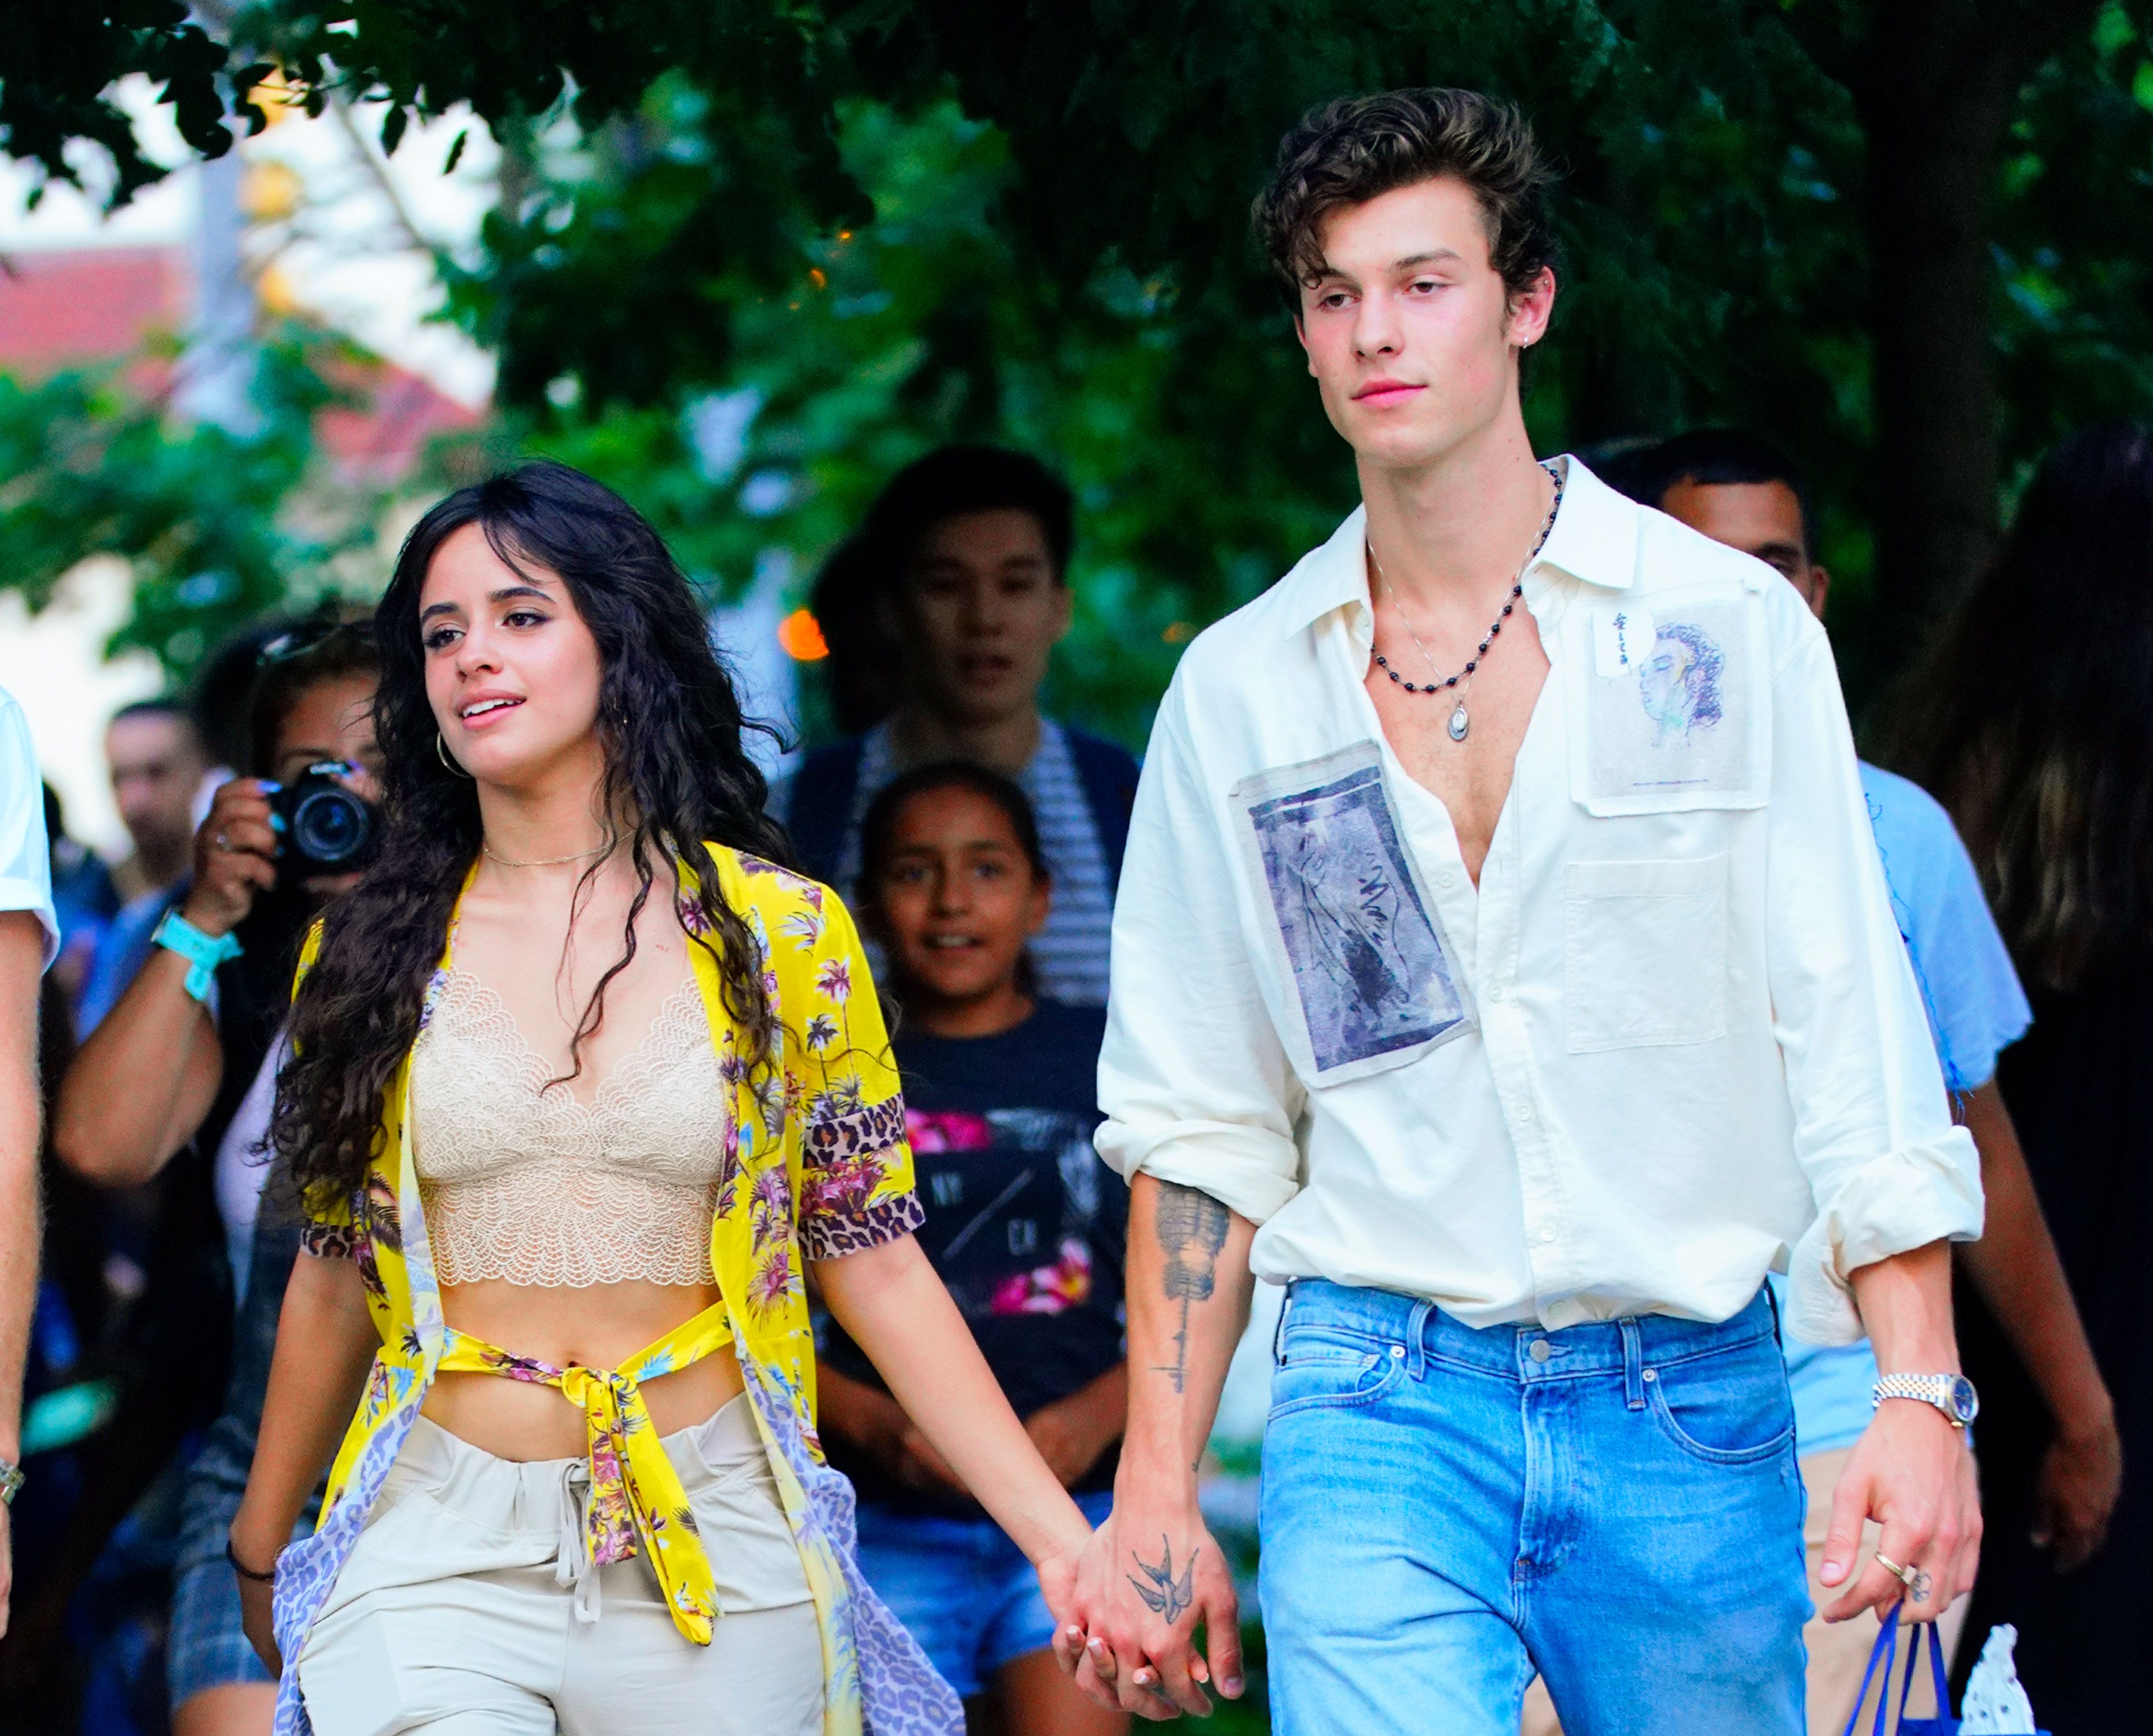 Camila Cabello and Shawn Mendes Talked More About Their Feelings for Each Other